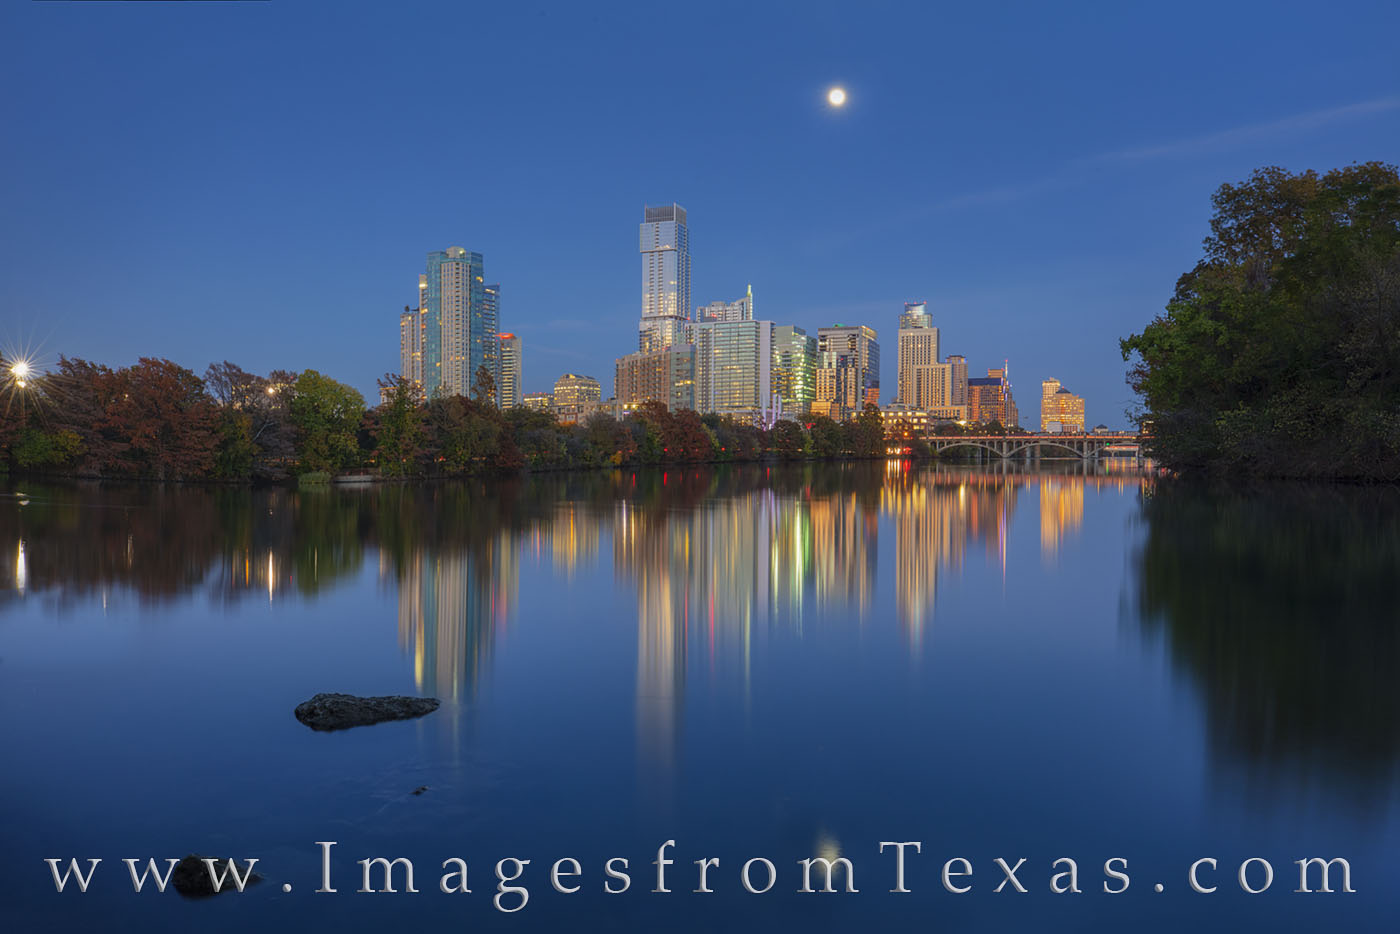 austin skyline, downtown austin, lou neff, full moon, ladybird lake, town lake, evening, austin, photo